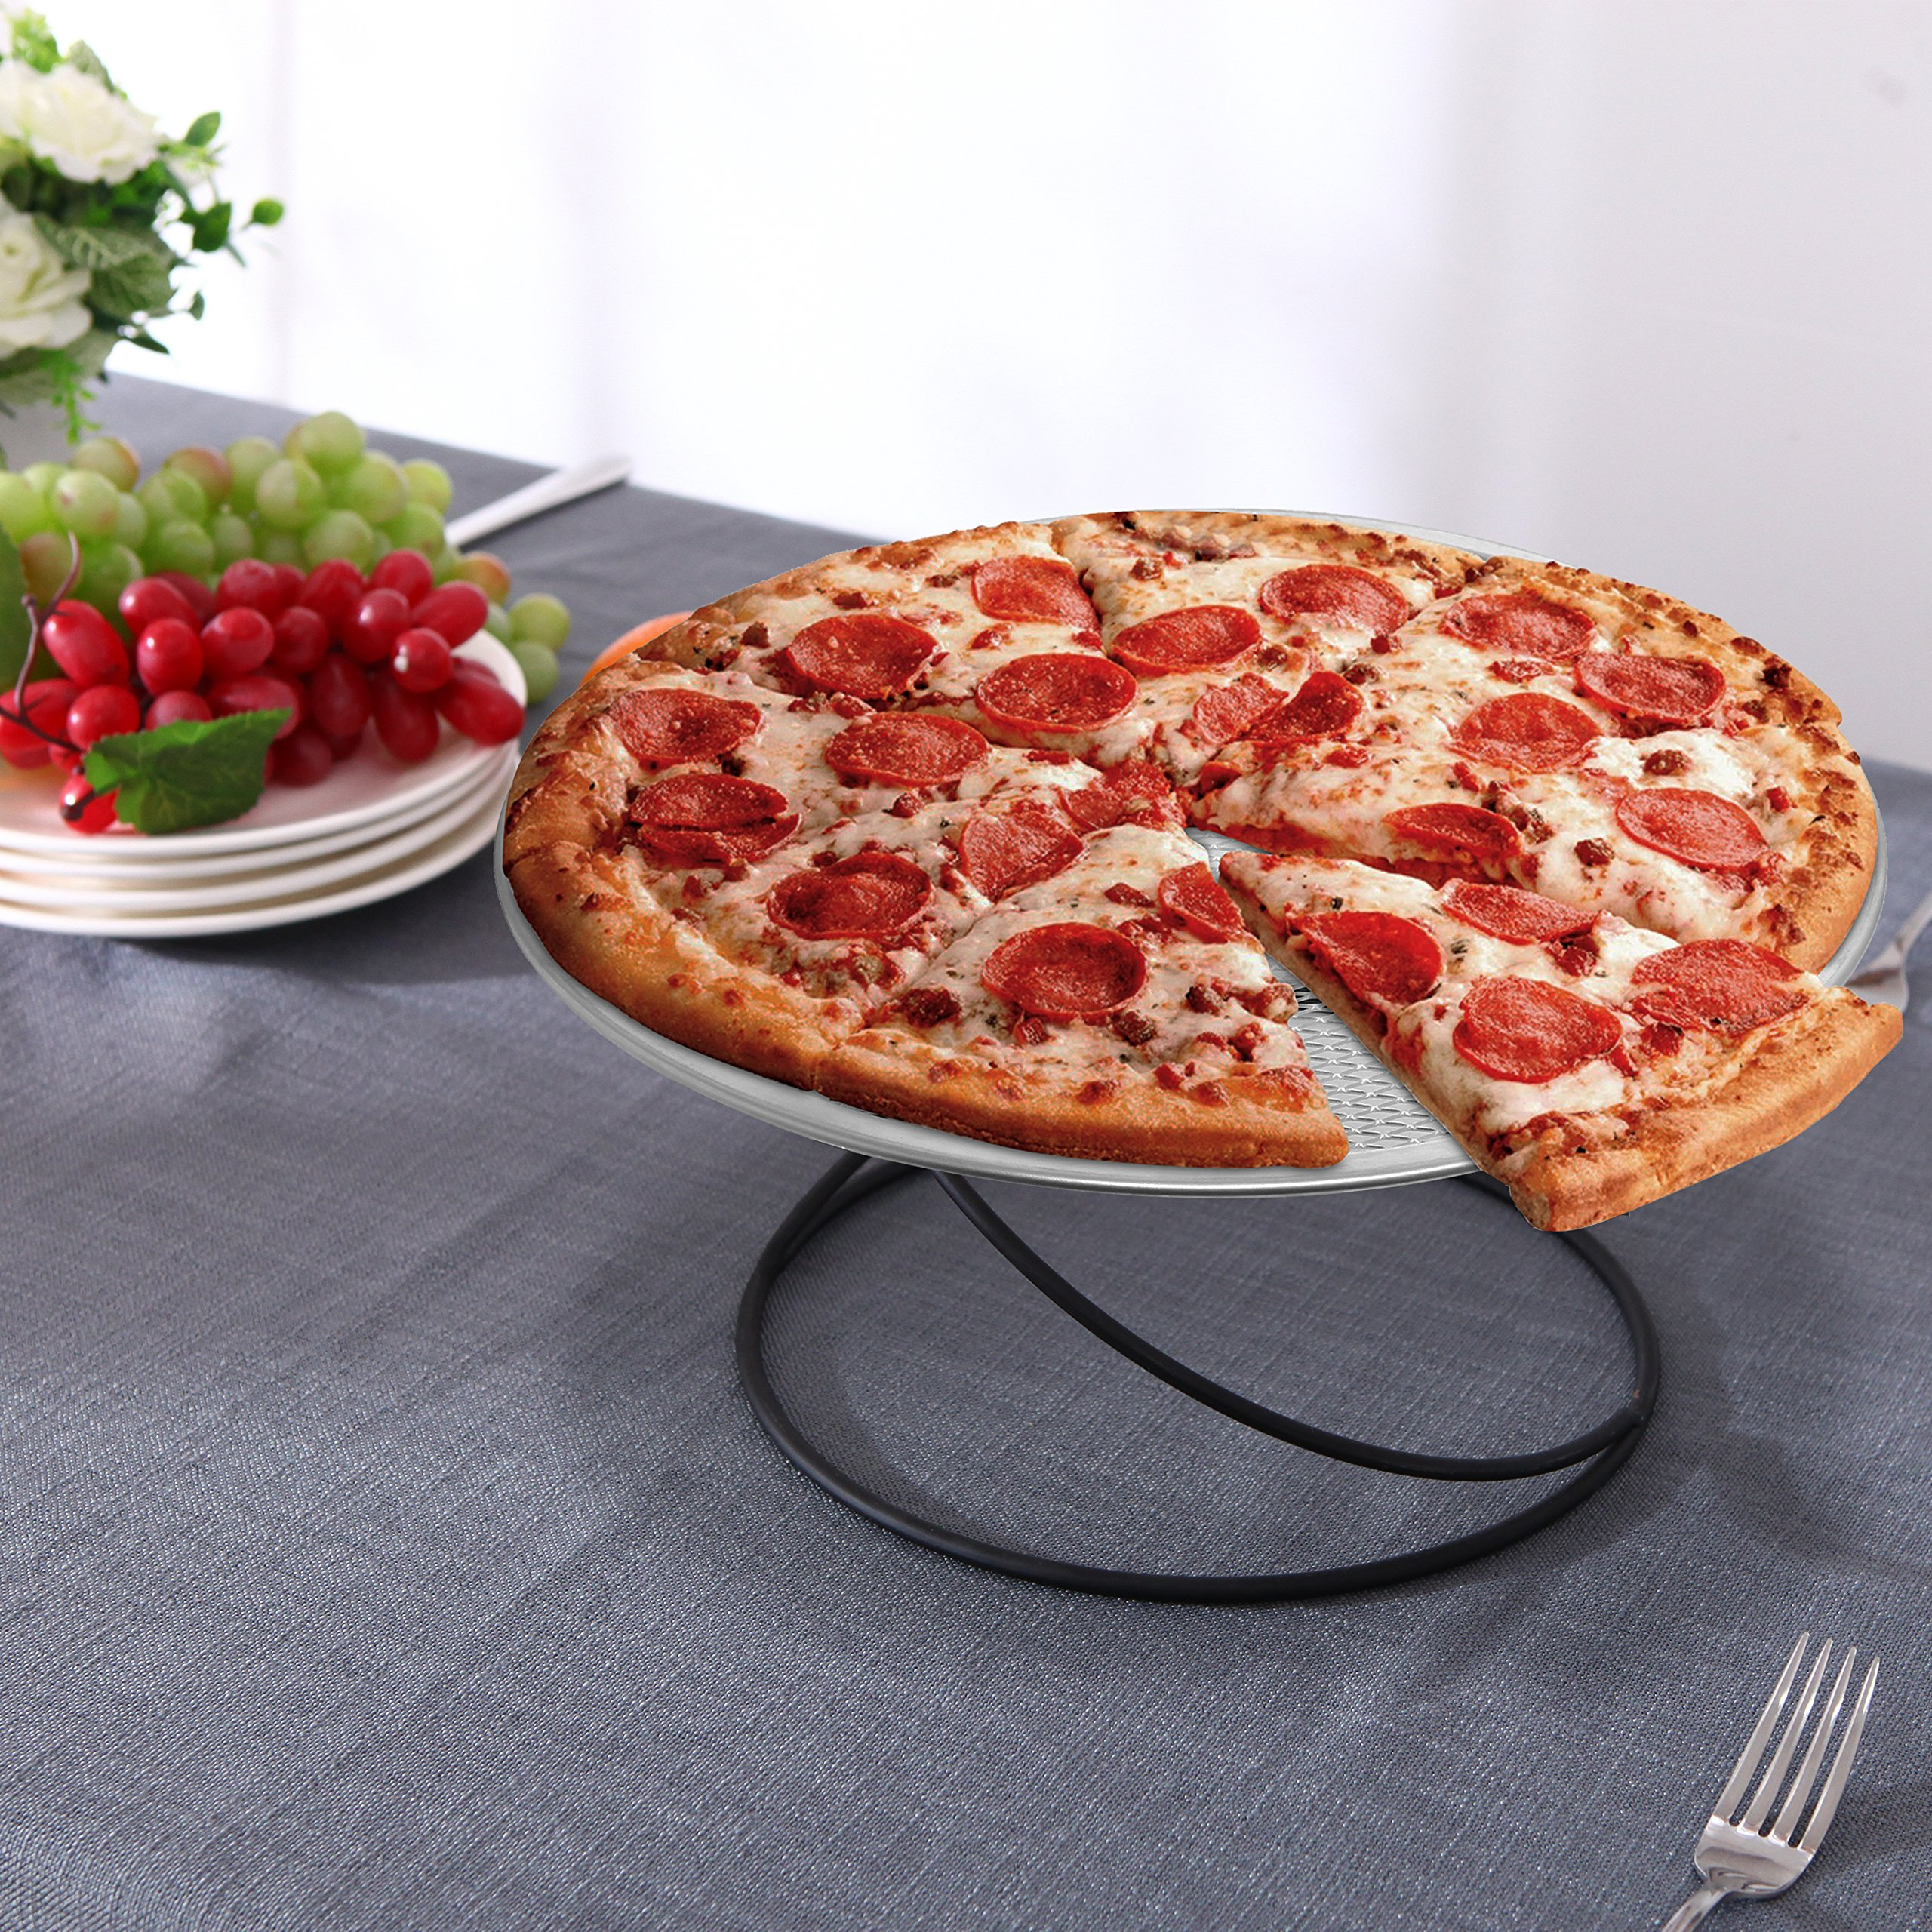 MyGift Set of 4 Metal Spiral Wire Tabletop Pizza Tray Stands, Black by MyGift (Image #3)